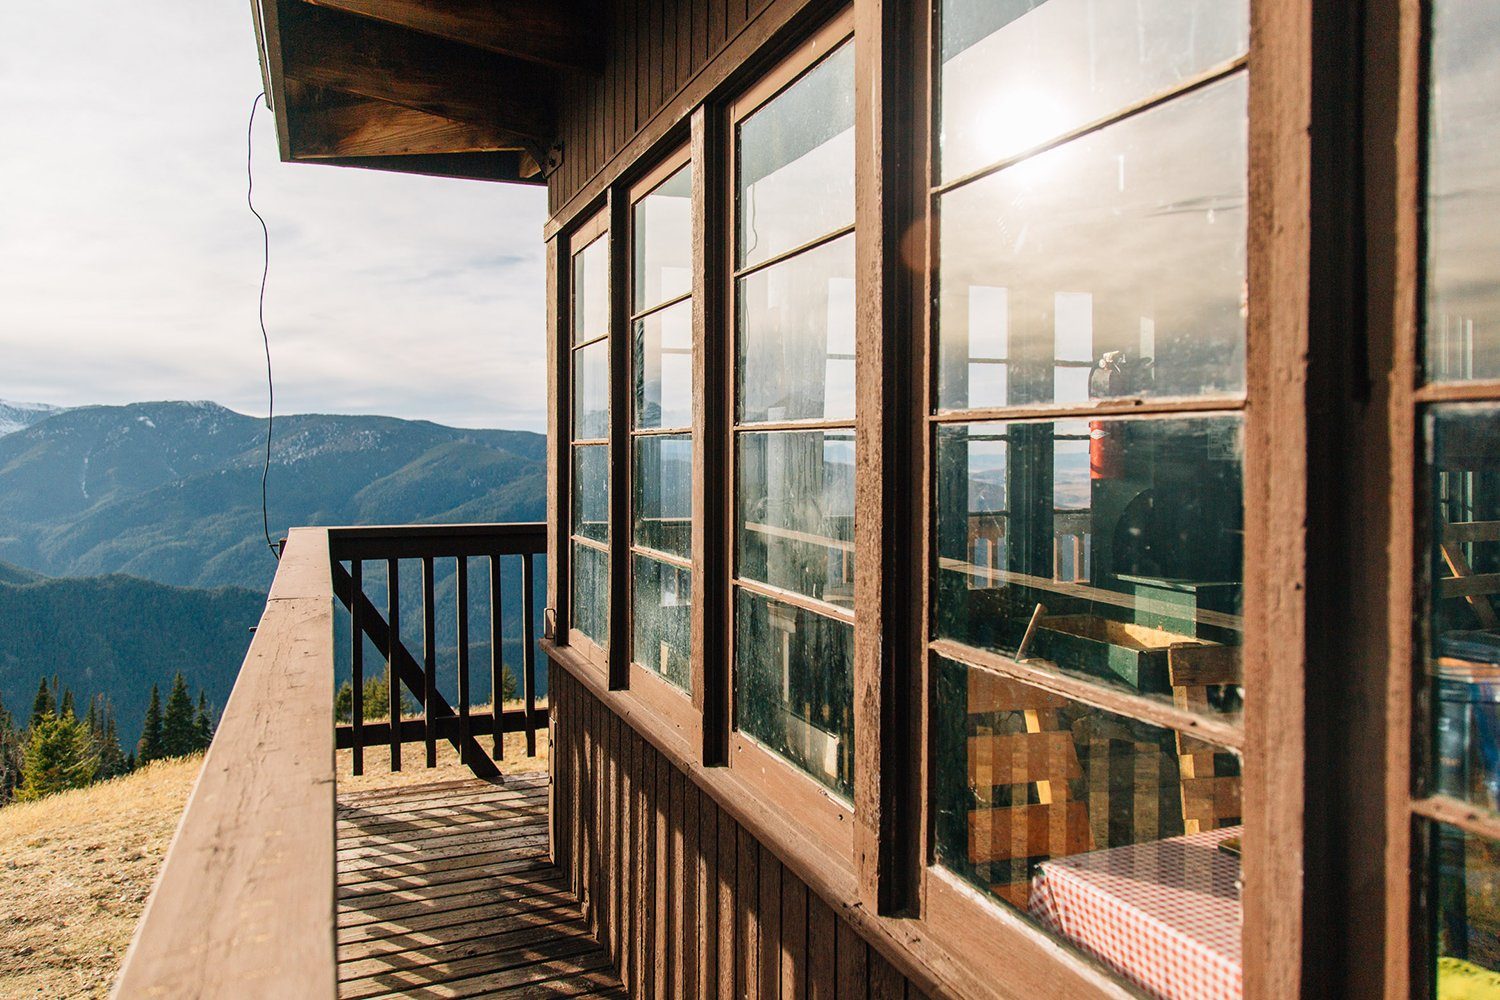 Photo 3 of 7 in A Fire Lookout Tower From the 1930's is Preserved as a Rustic Getaway